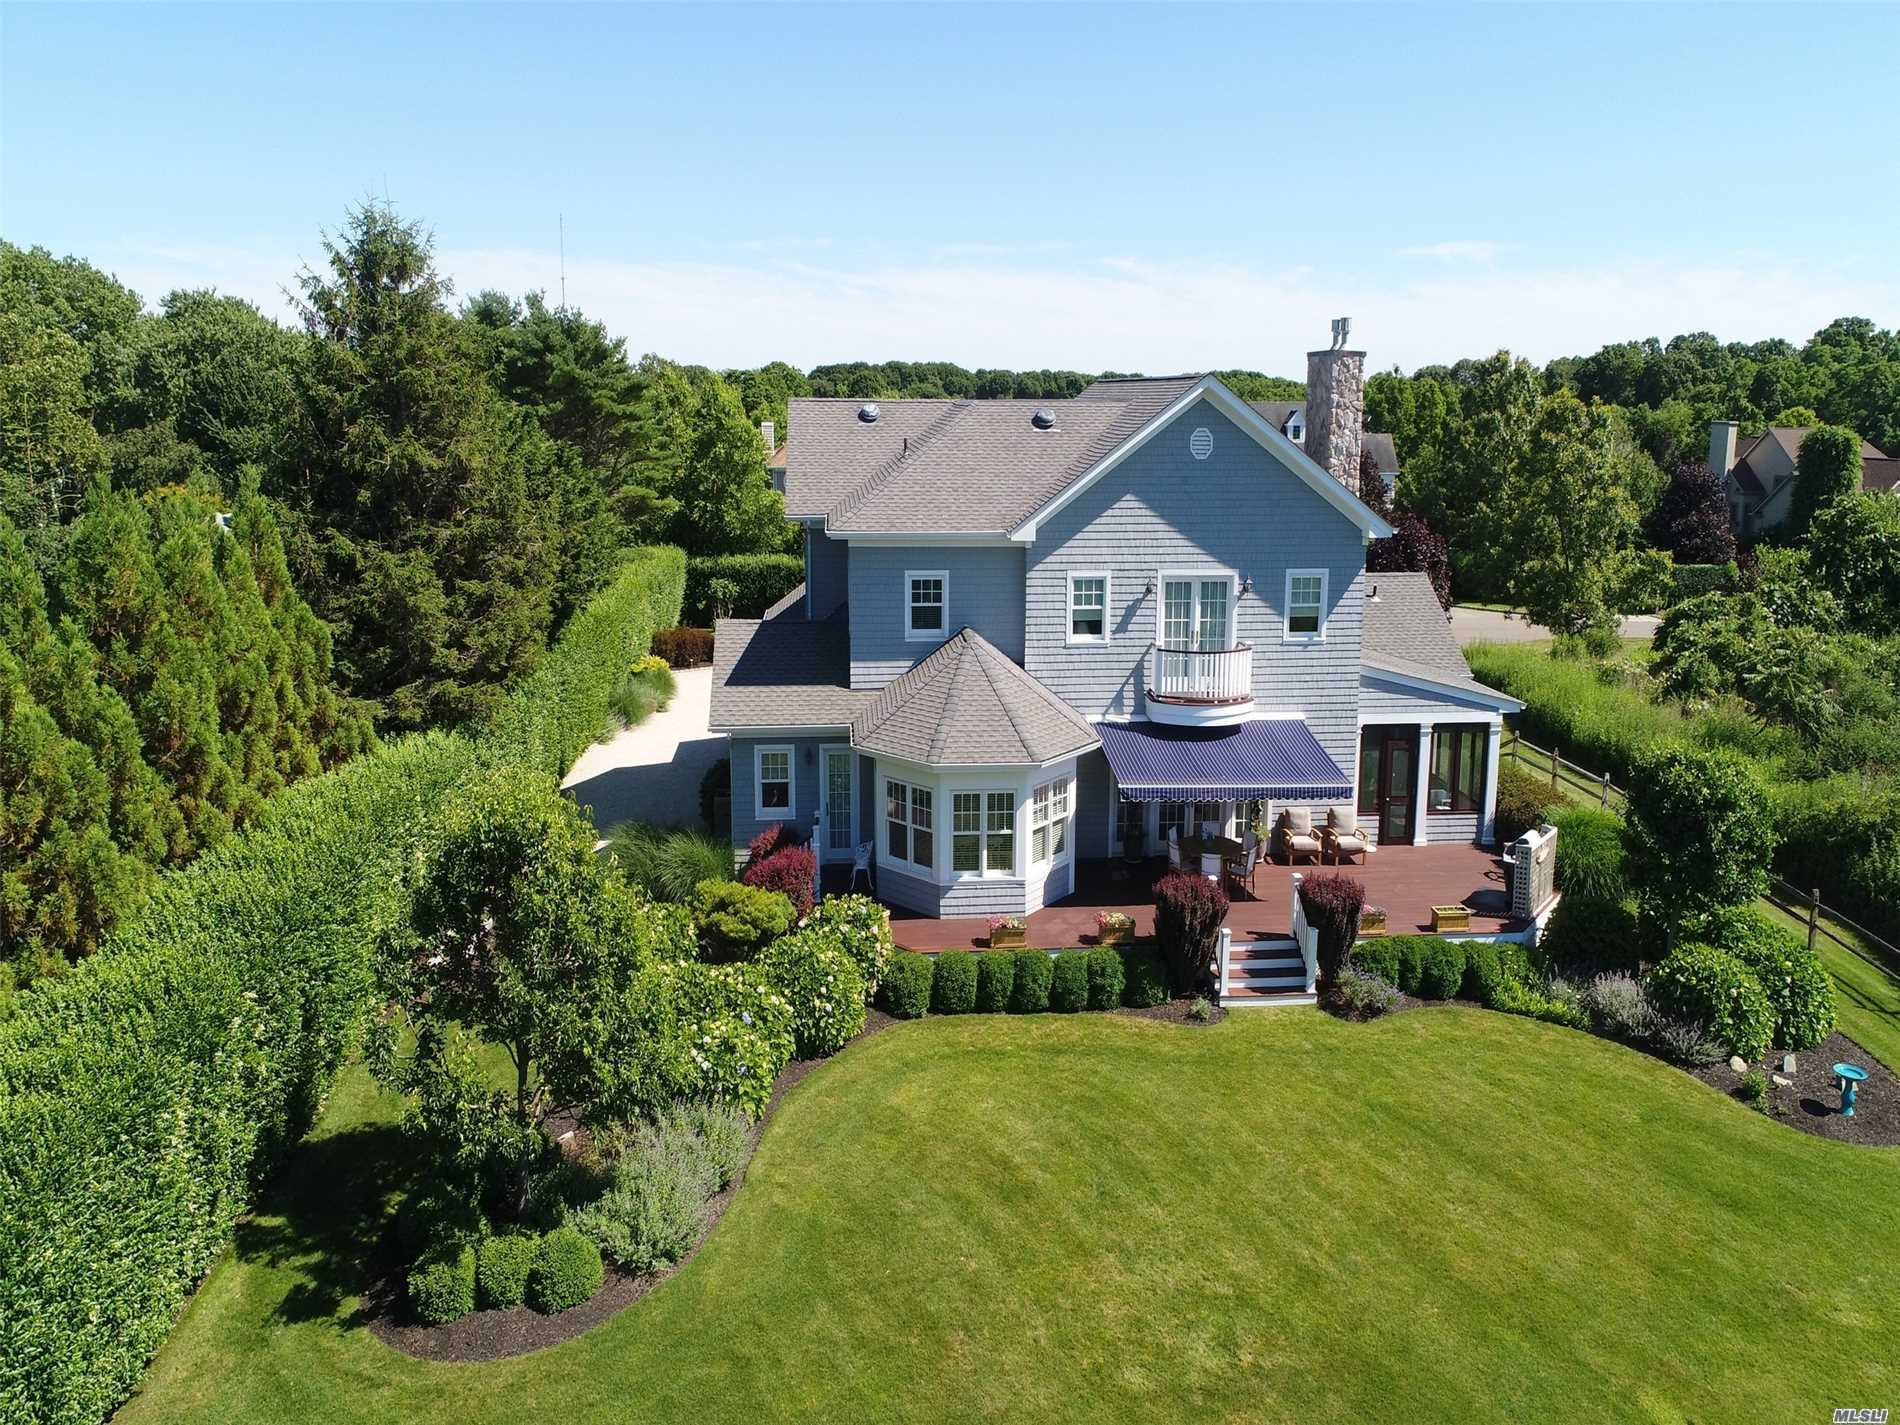 Coveted Location In Sound Beach Community On Rock Cove, Greenport: Exceptional Diamond Condition, Custom Built 3, 928 Sq. Ft. Home On .69 Beautifully Landscaped Acres In Rockcove Estates. A Short Walk To Deeded Association Sound Beach. Custom Woodwork, Large Eat-In Gourmet Kitchen, Spacious Great Room With Gas Fireplace, Grand Screened Porch, First & Second Floor Master En-Suites, High-End Designer Fixtures, Quality Mechanicals. Room For A Pool. Adjacent Lot Also For Sale See Mls# 3066381.